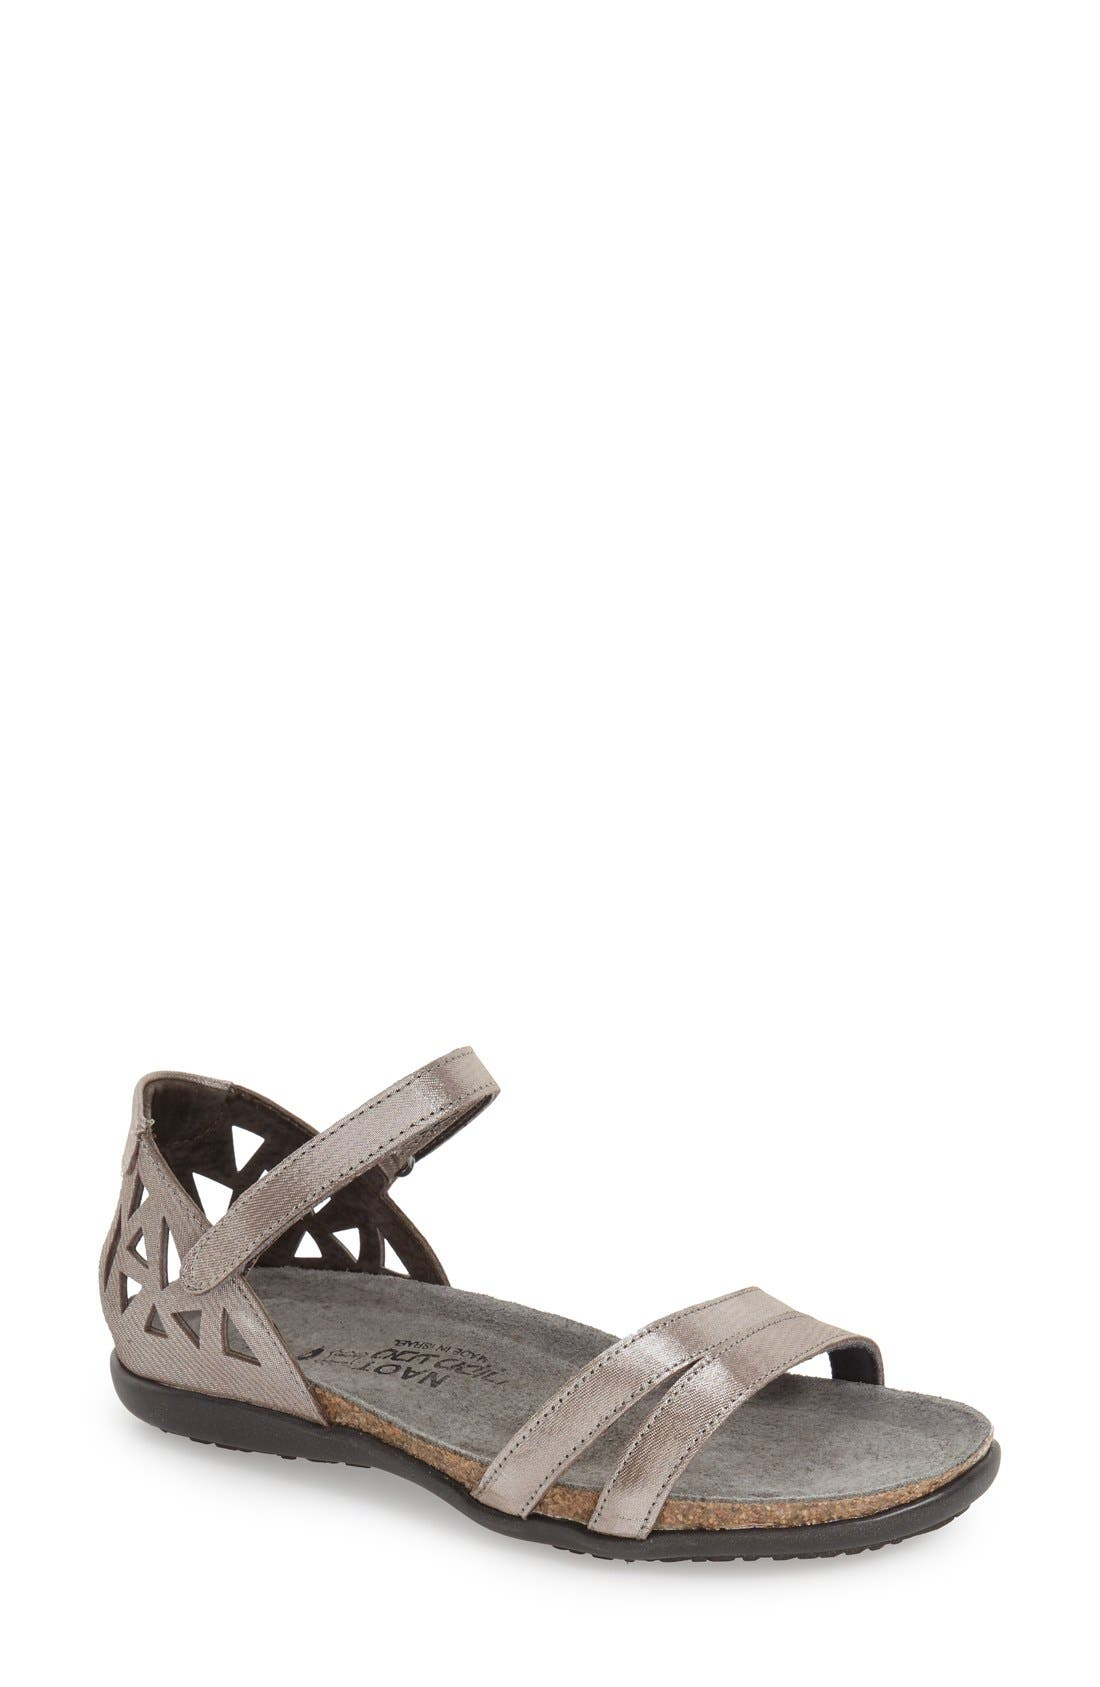 'Bonnie' Sandal,                         Main,                         color, SILVER THREADS LEATHER